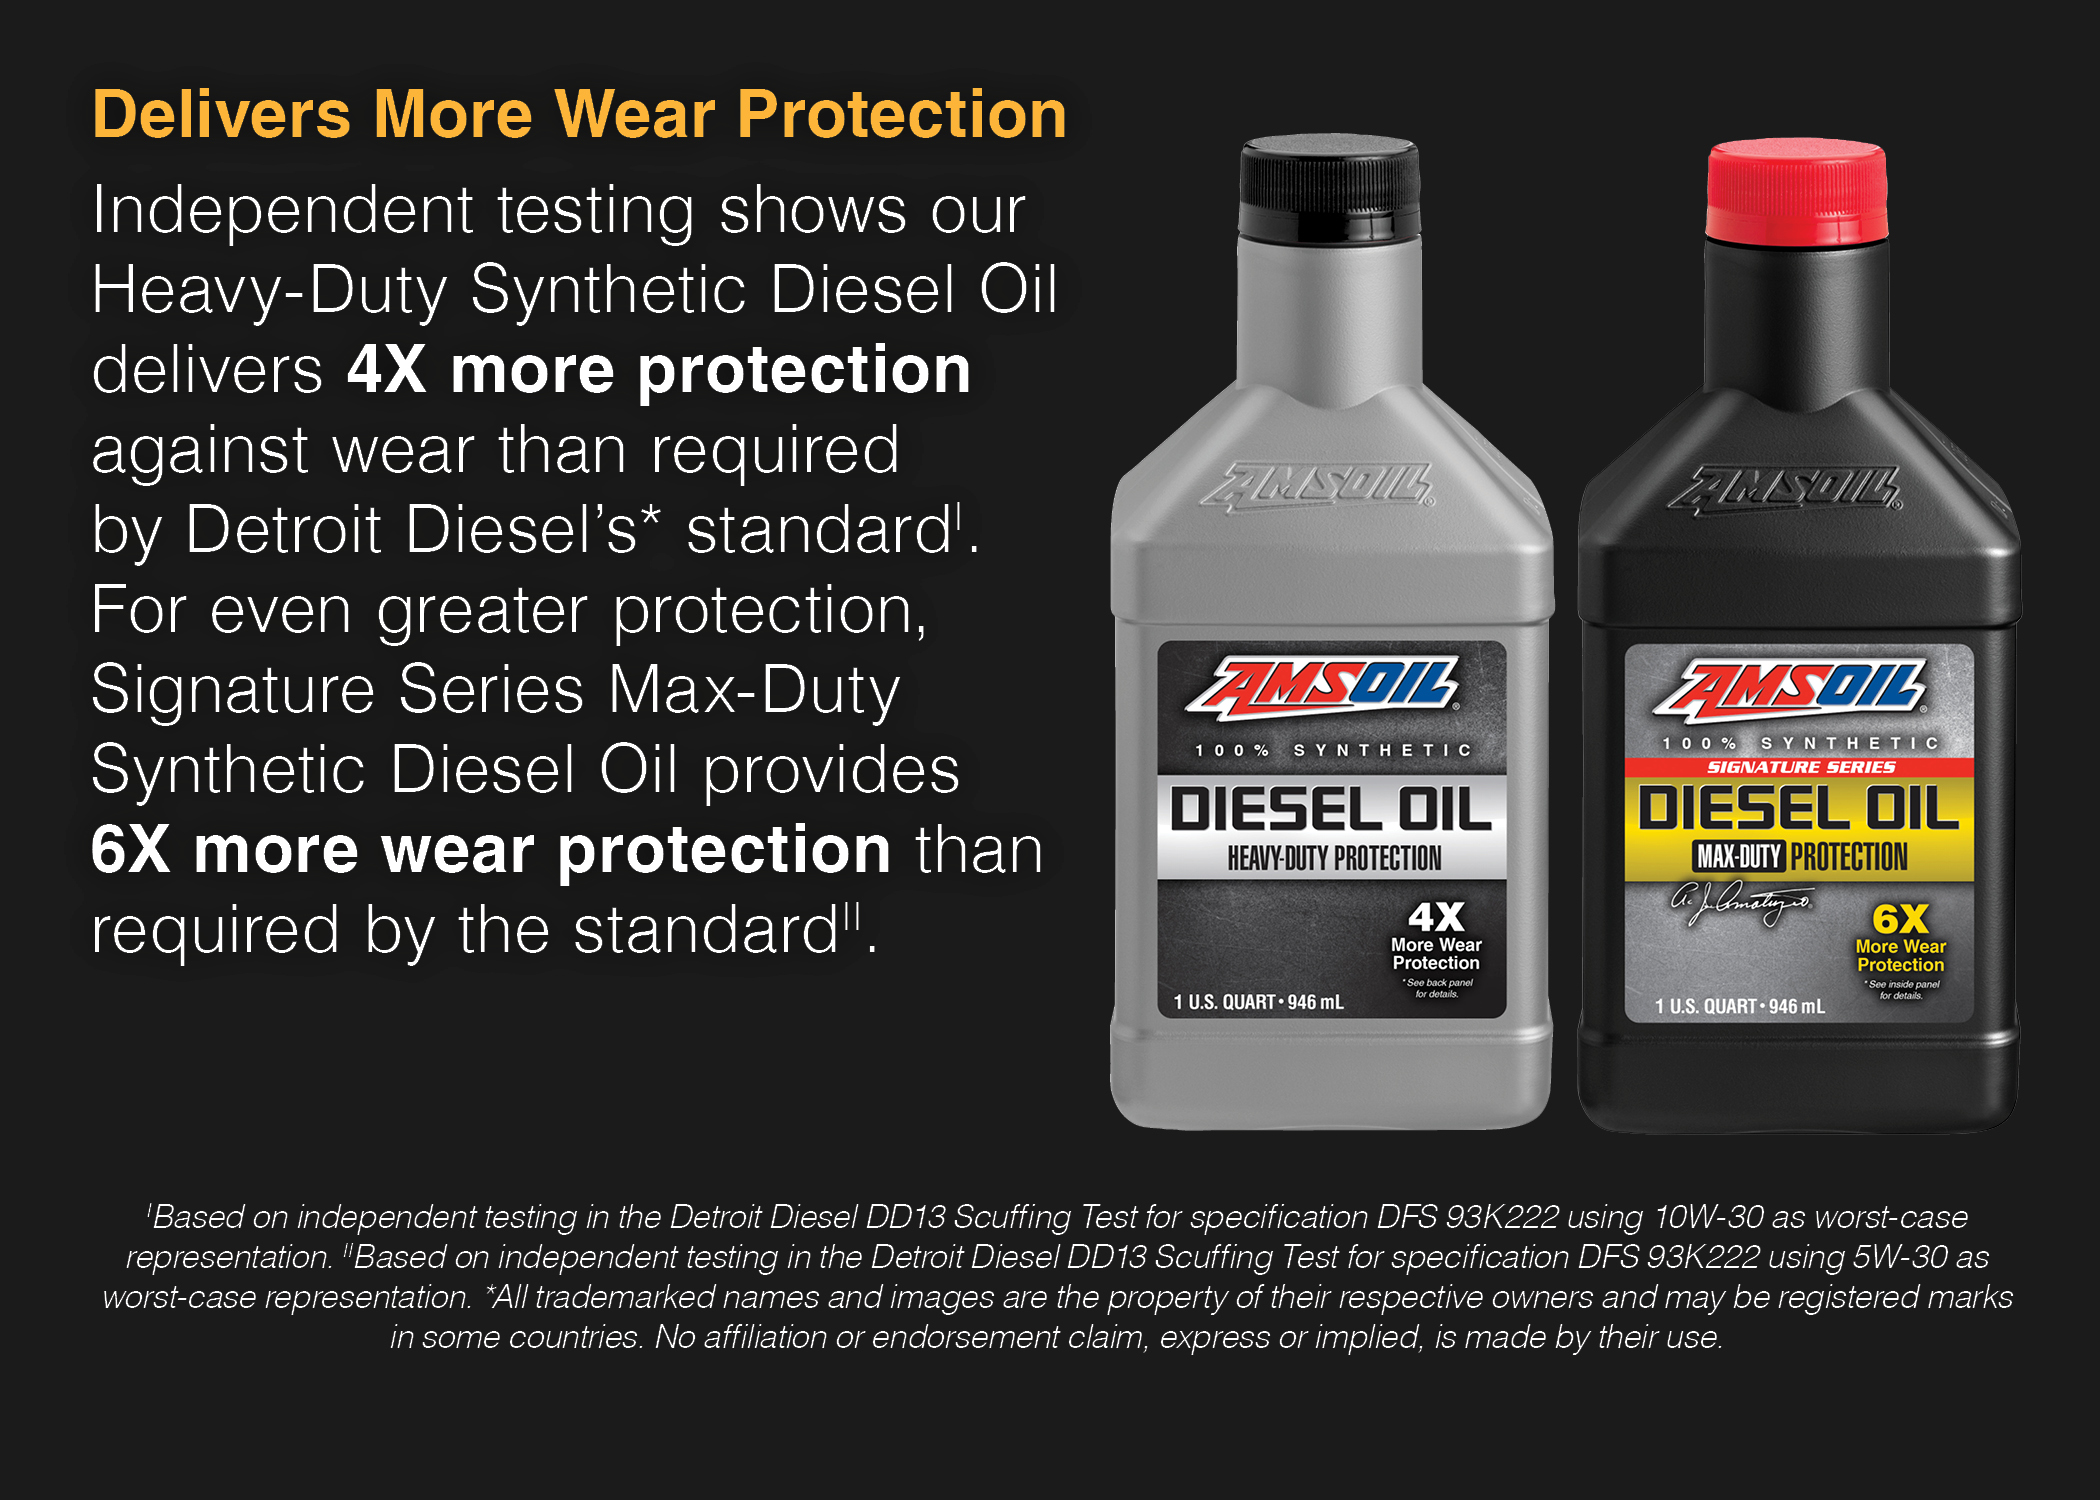 diesel oil choices - Two Tier Performance Levels